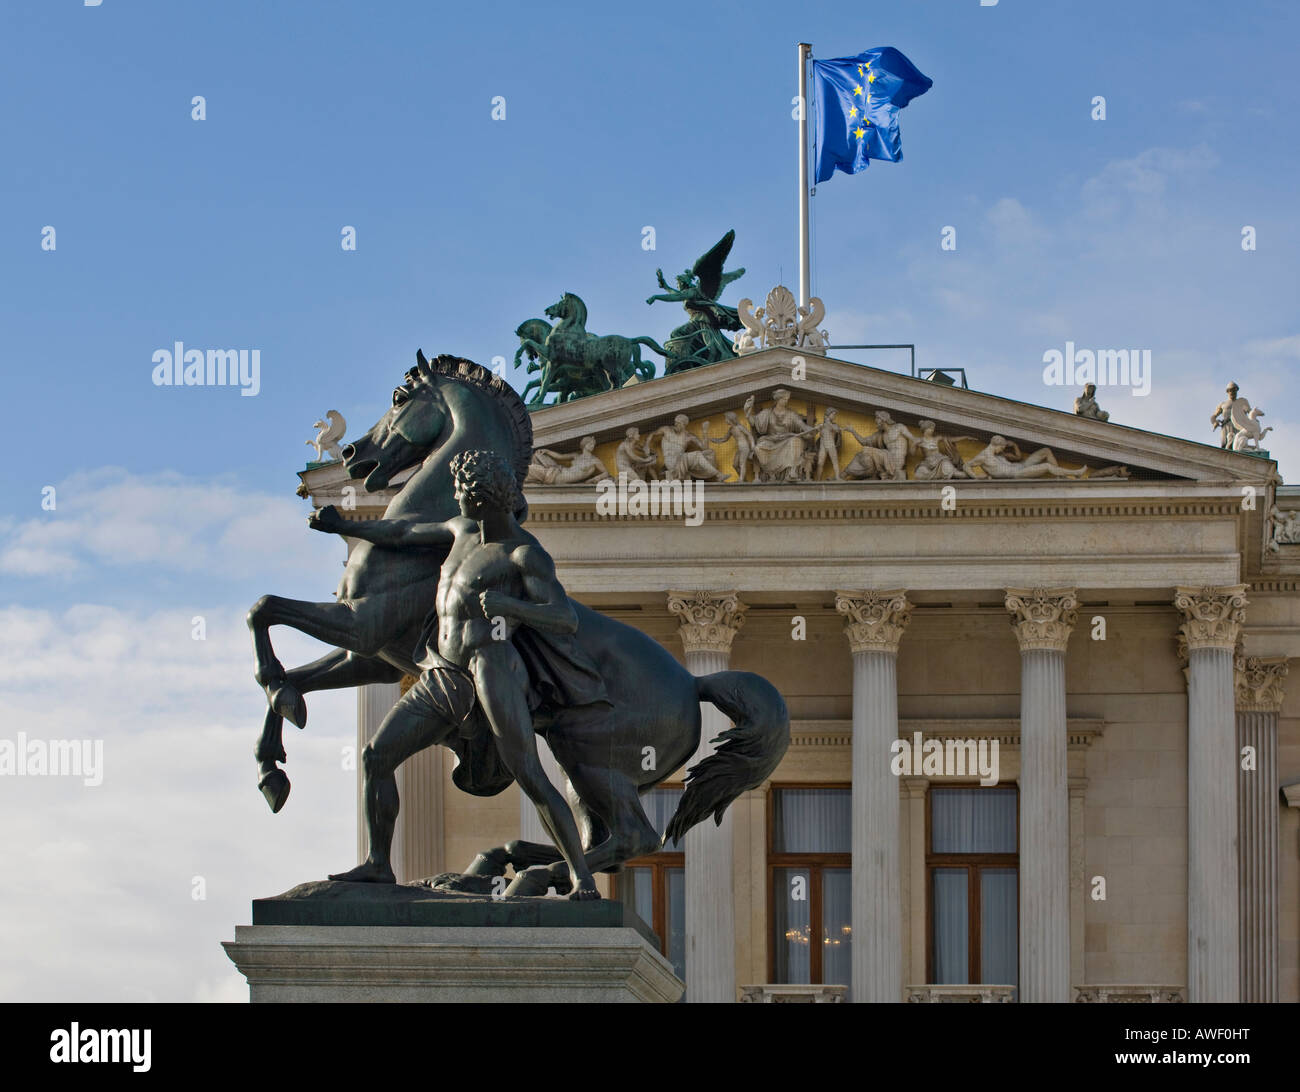 Rossebaendiger statue in front of the left wing of the parliament building, Vienna, Austria, Europe - Stock Image